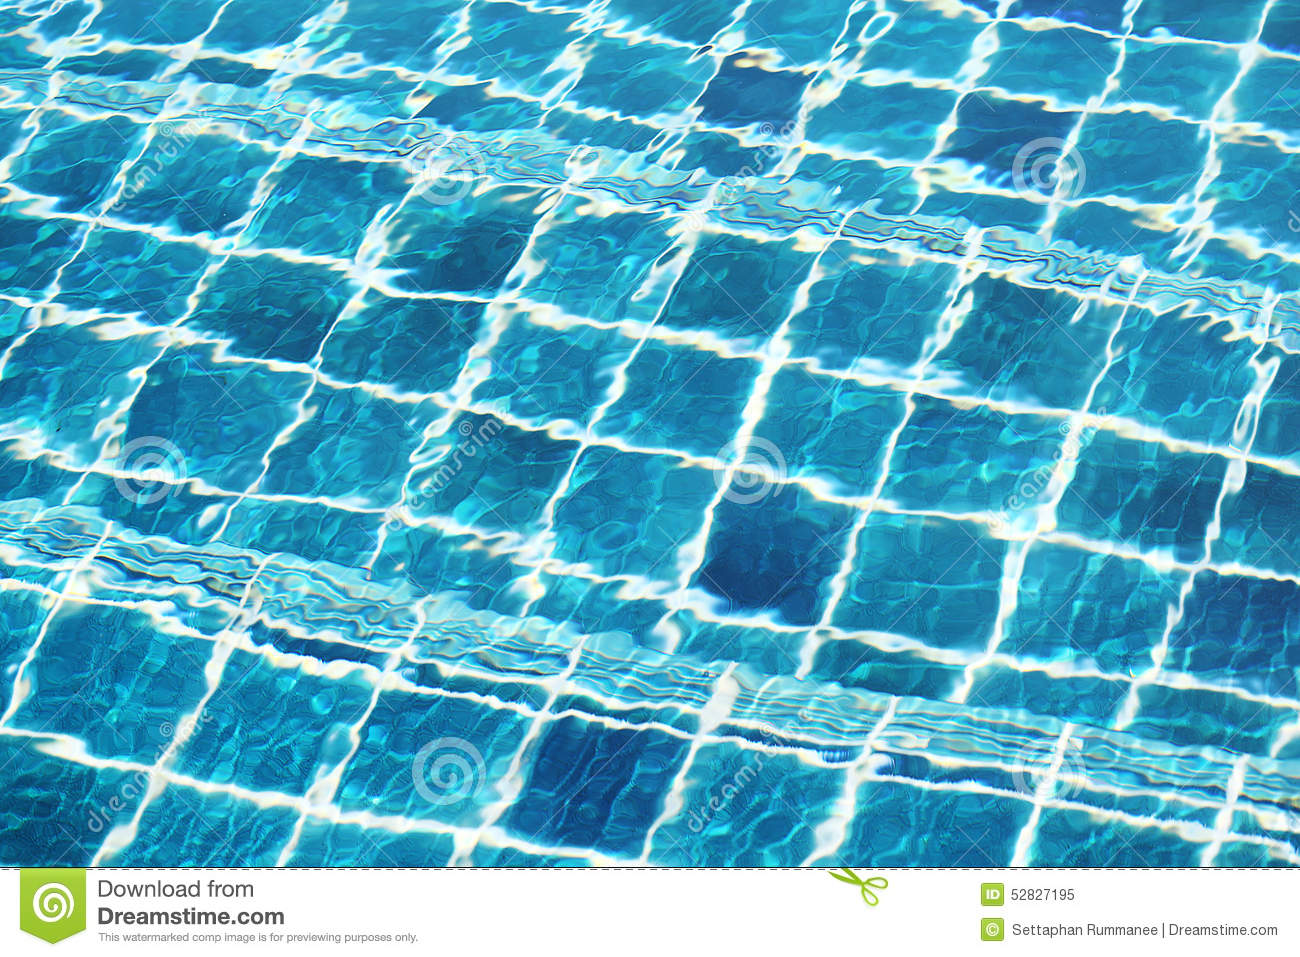 Blue Ceramic Wall Tiles And Details Of Surface On Swimming